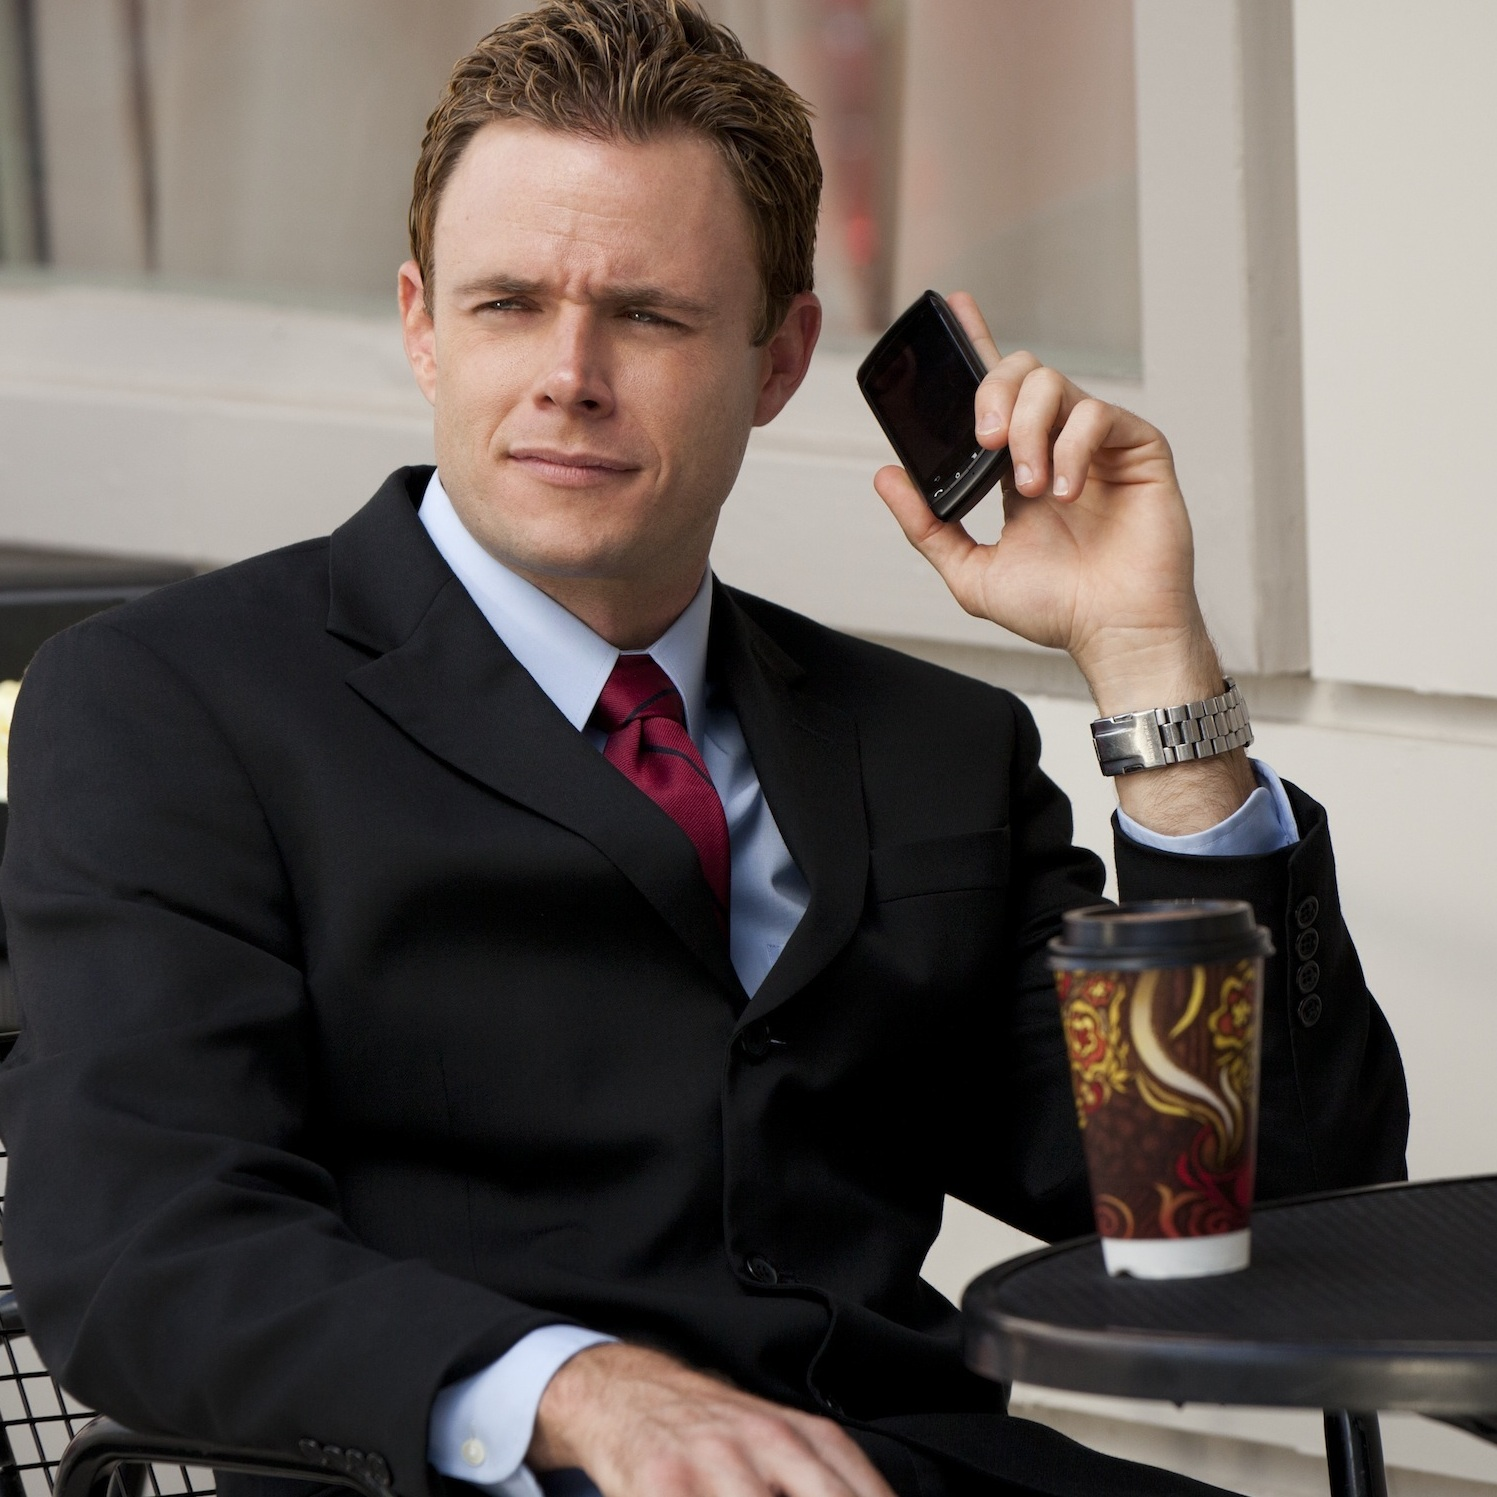 Bradley Snedeker is the actual name of this actor in I Married Who? He plays Kellie Martin's fiance. He is getting The Pullman, and you can tell from this photo. (See how he's on his phone all the time?)